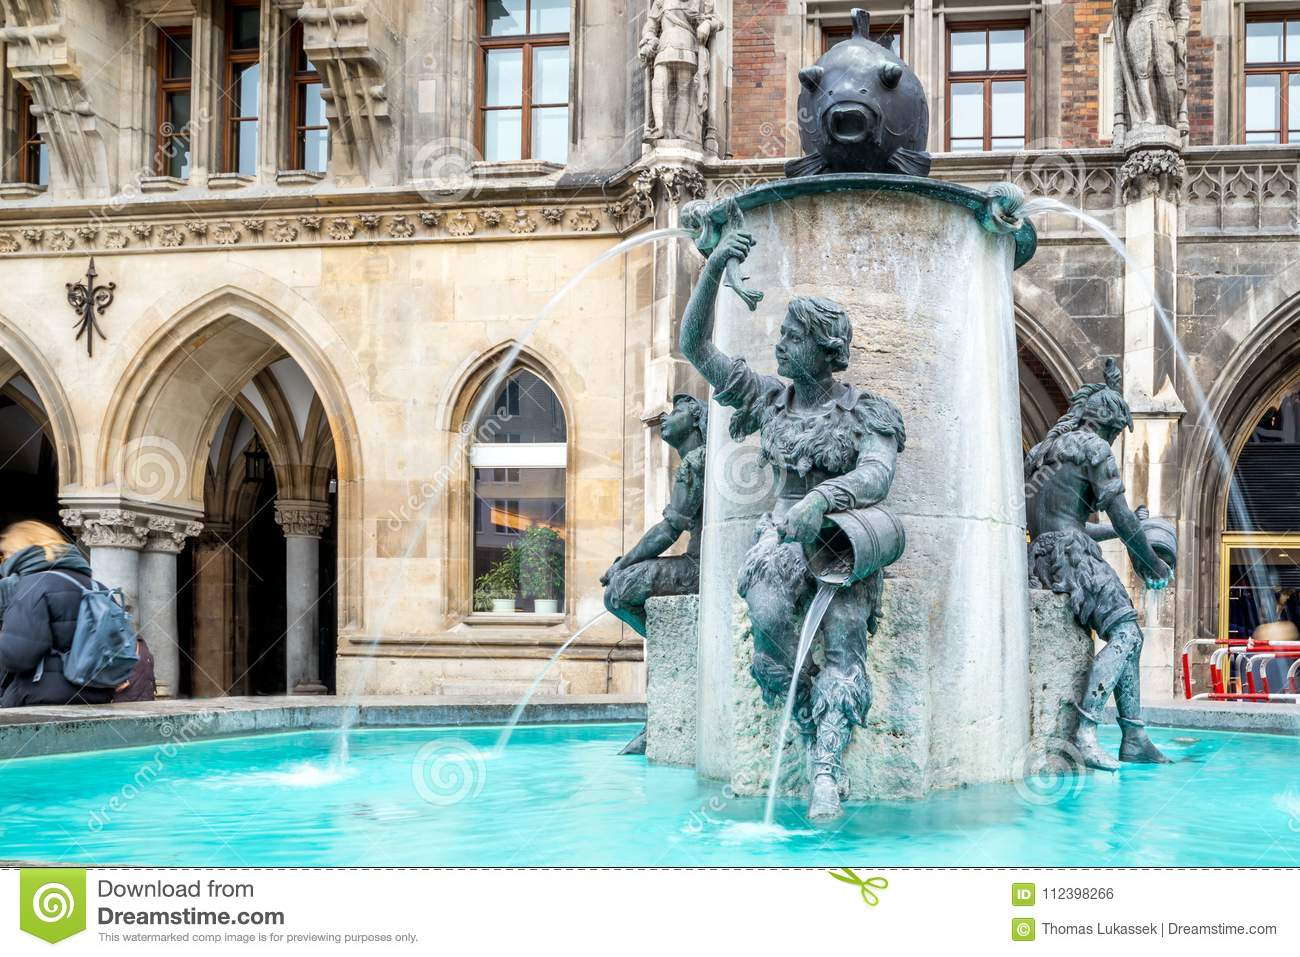 The famous fish fountain, Fischbrunnen, on the famous square of Marienplatz